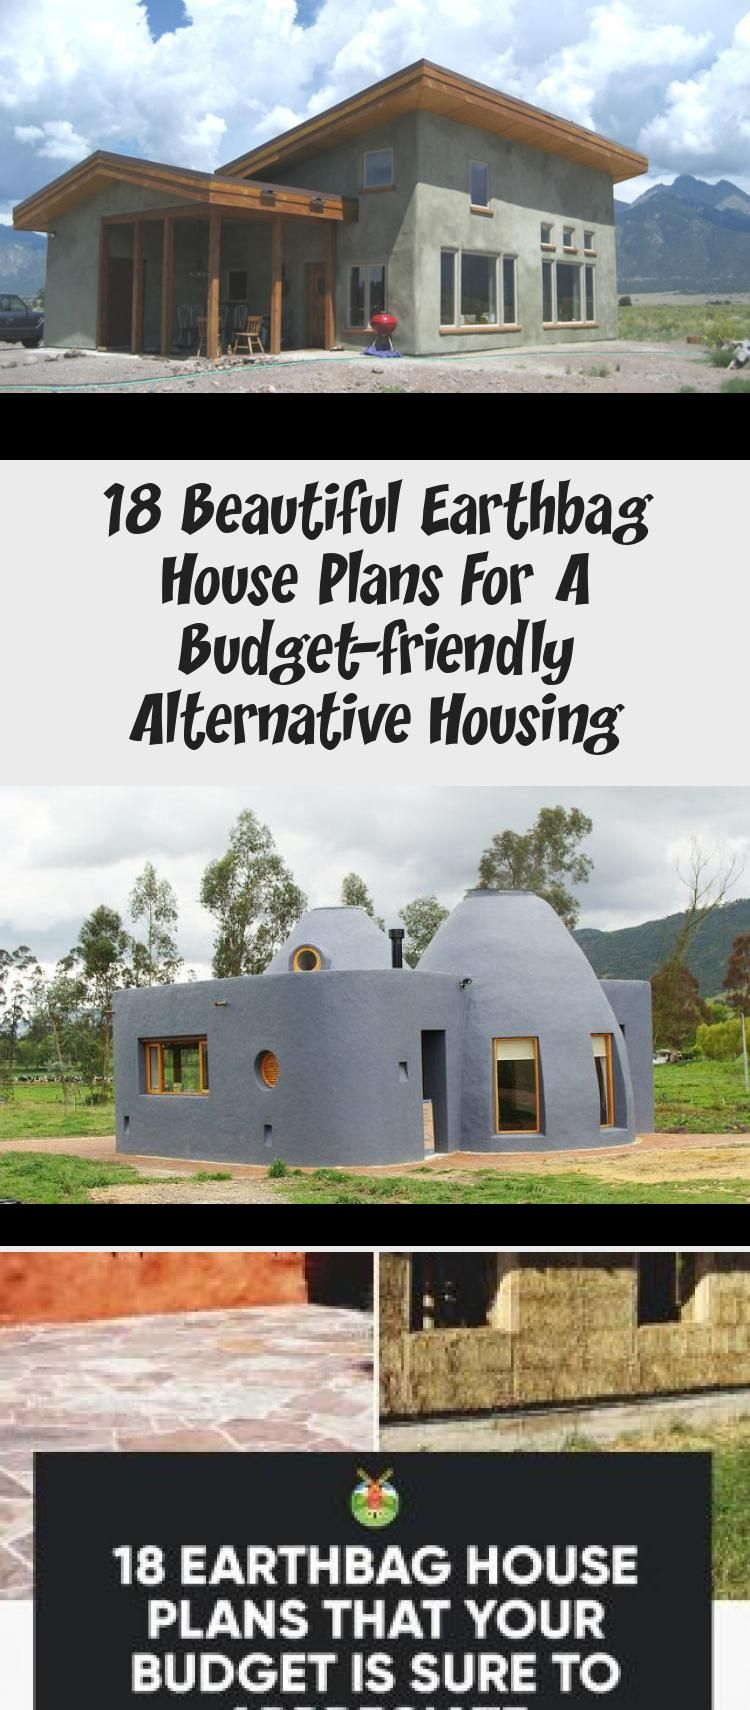 18 Beautiful Earthbag House Plans For A Budget Friendly Alternative Housing Ruby S Blog Tree House Plans House Plans Small House